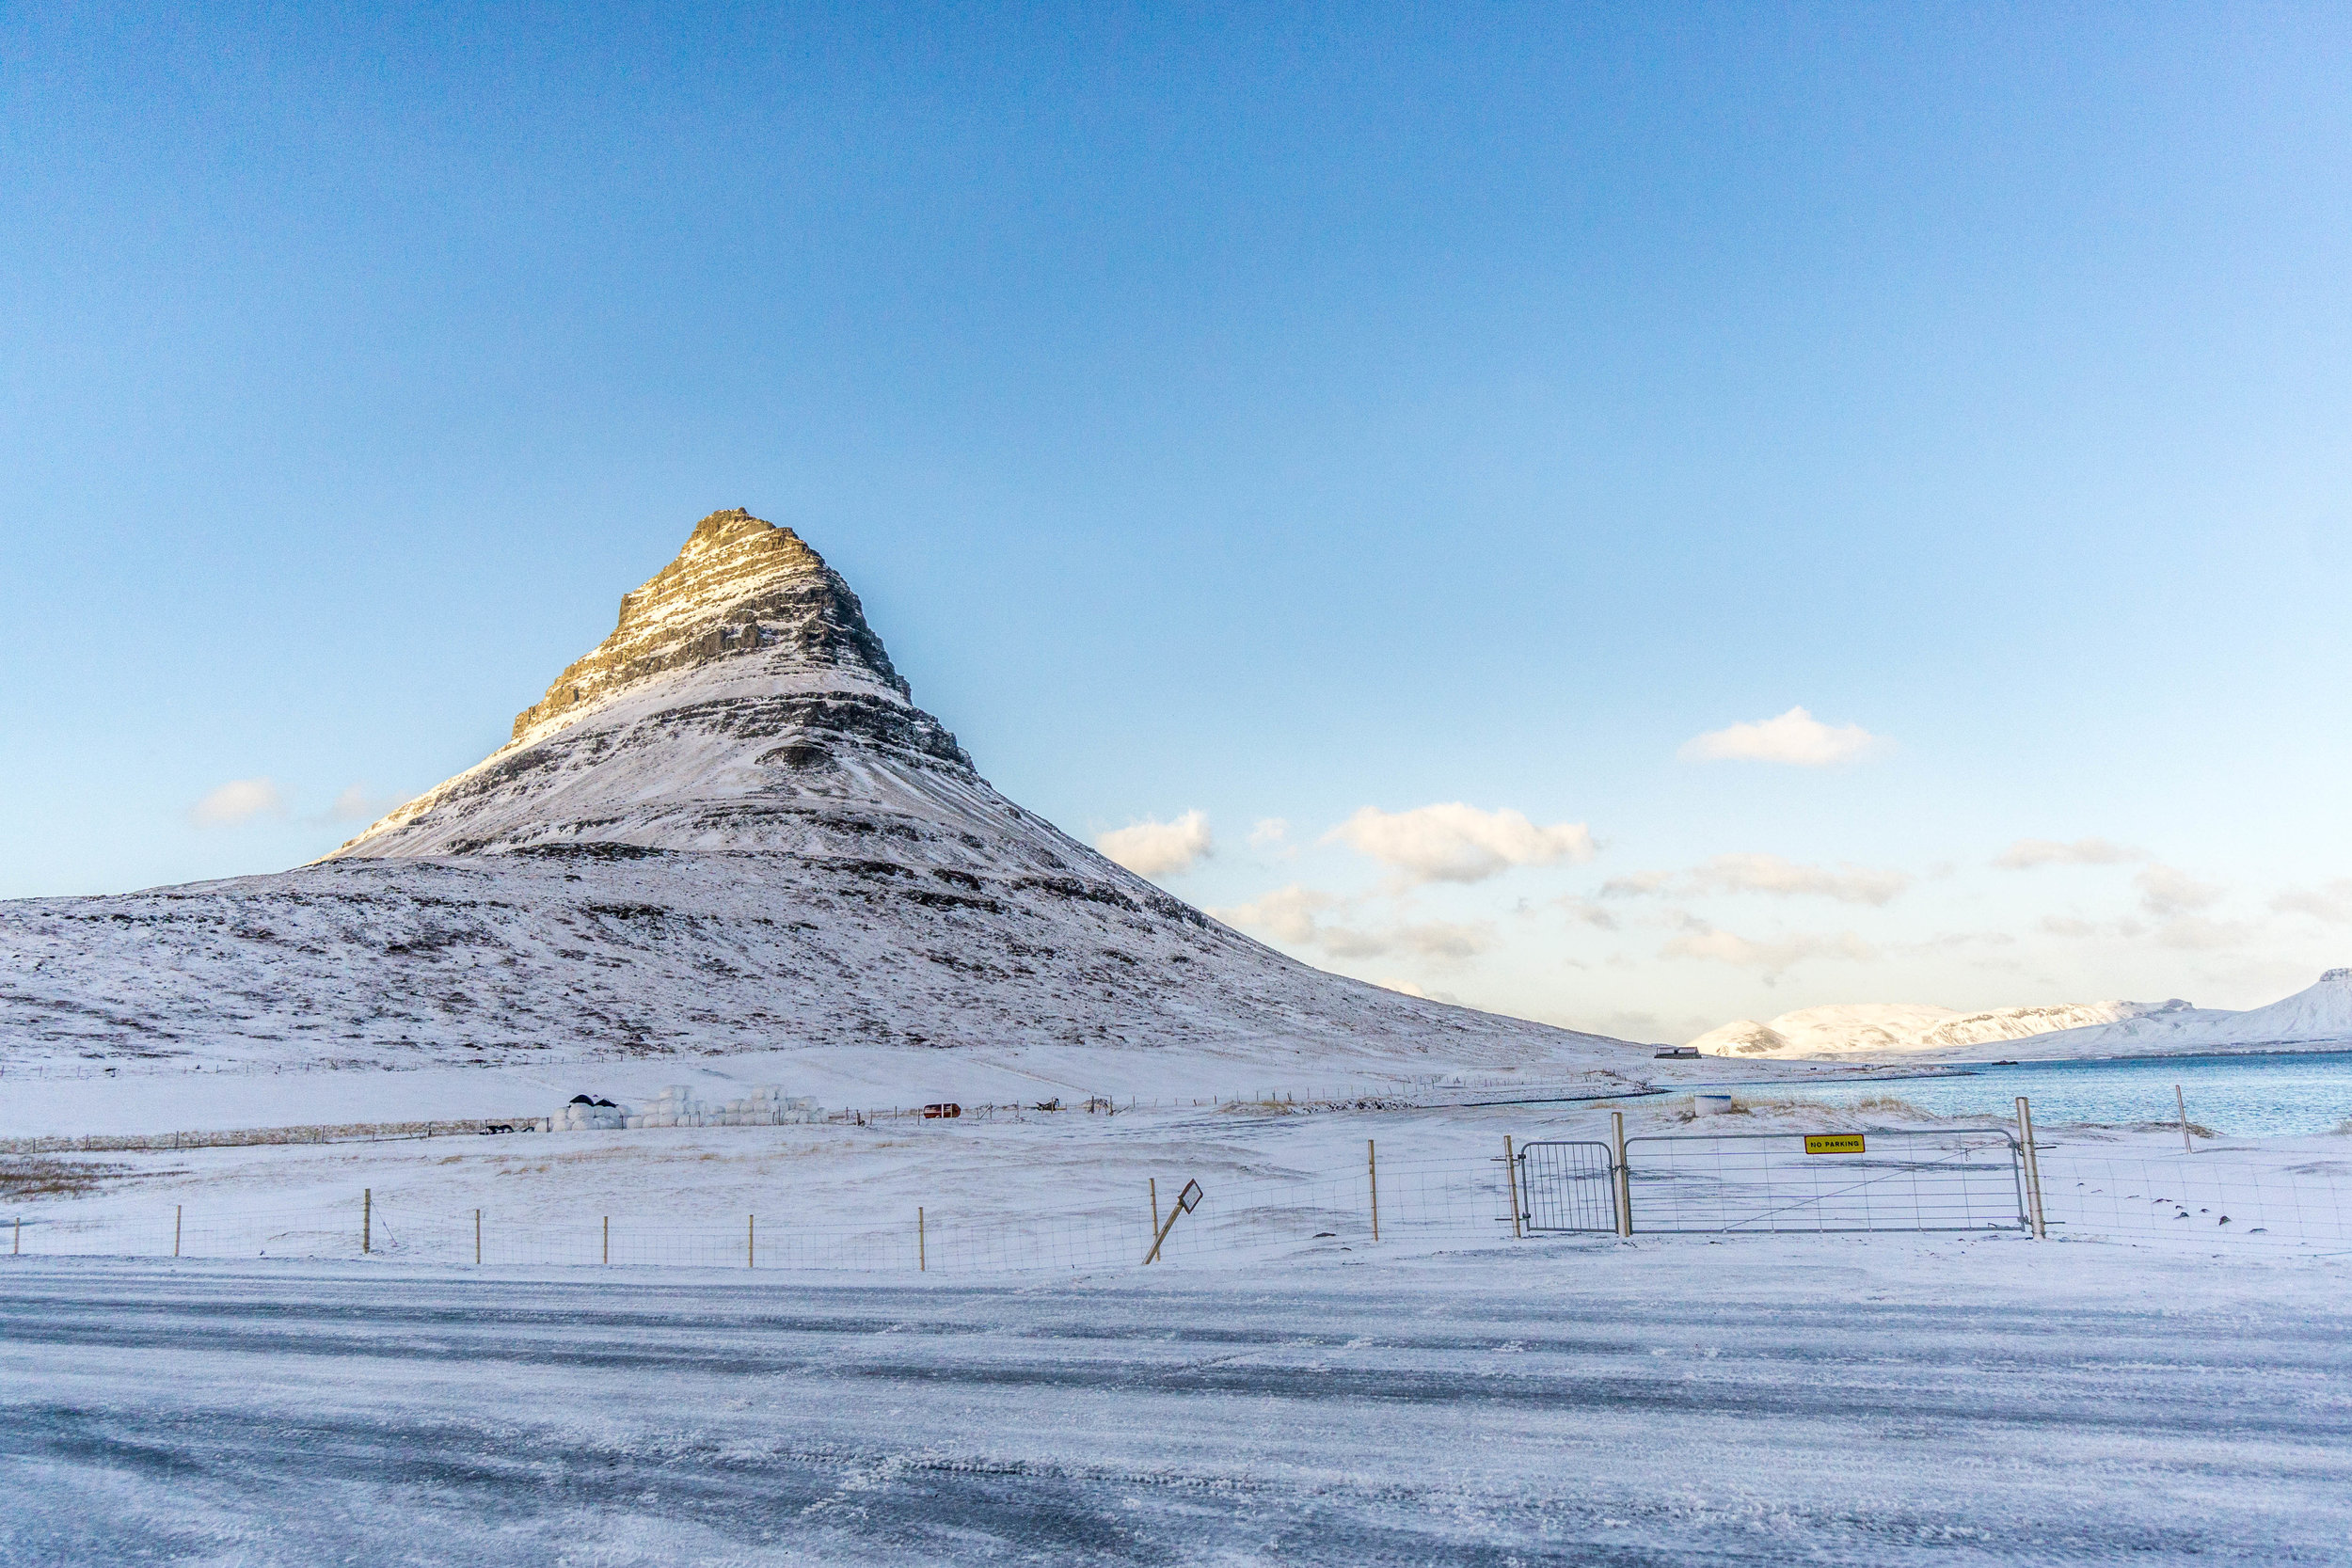 One of the most beautiful and photographed mountains in the world: Kirkjufell